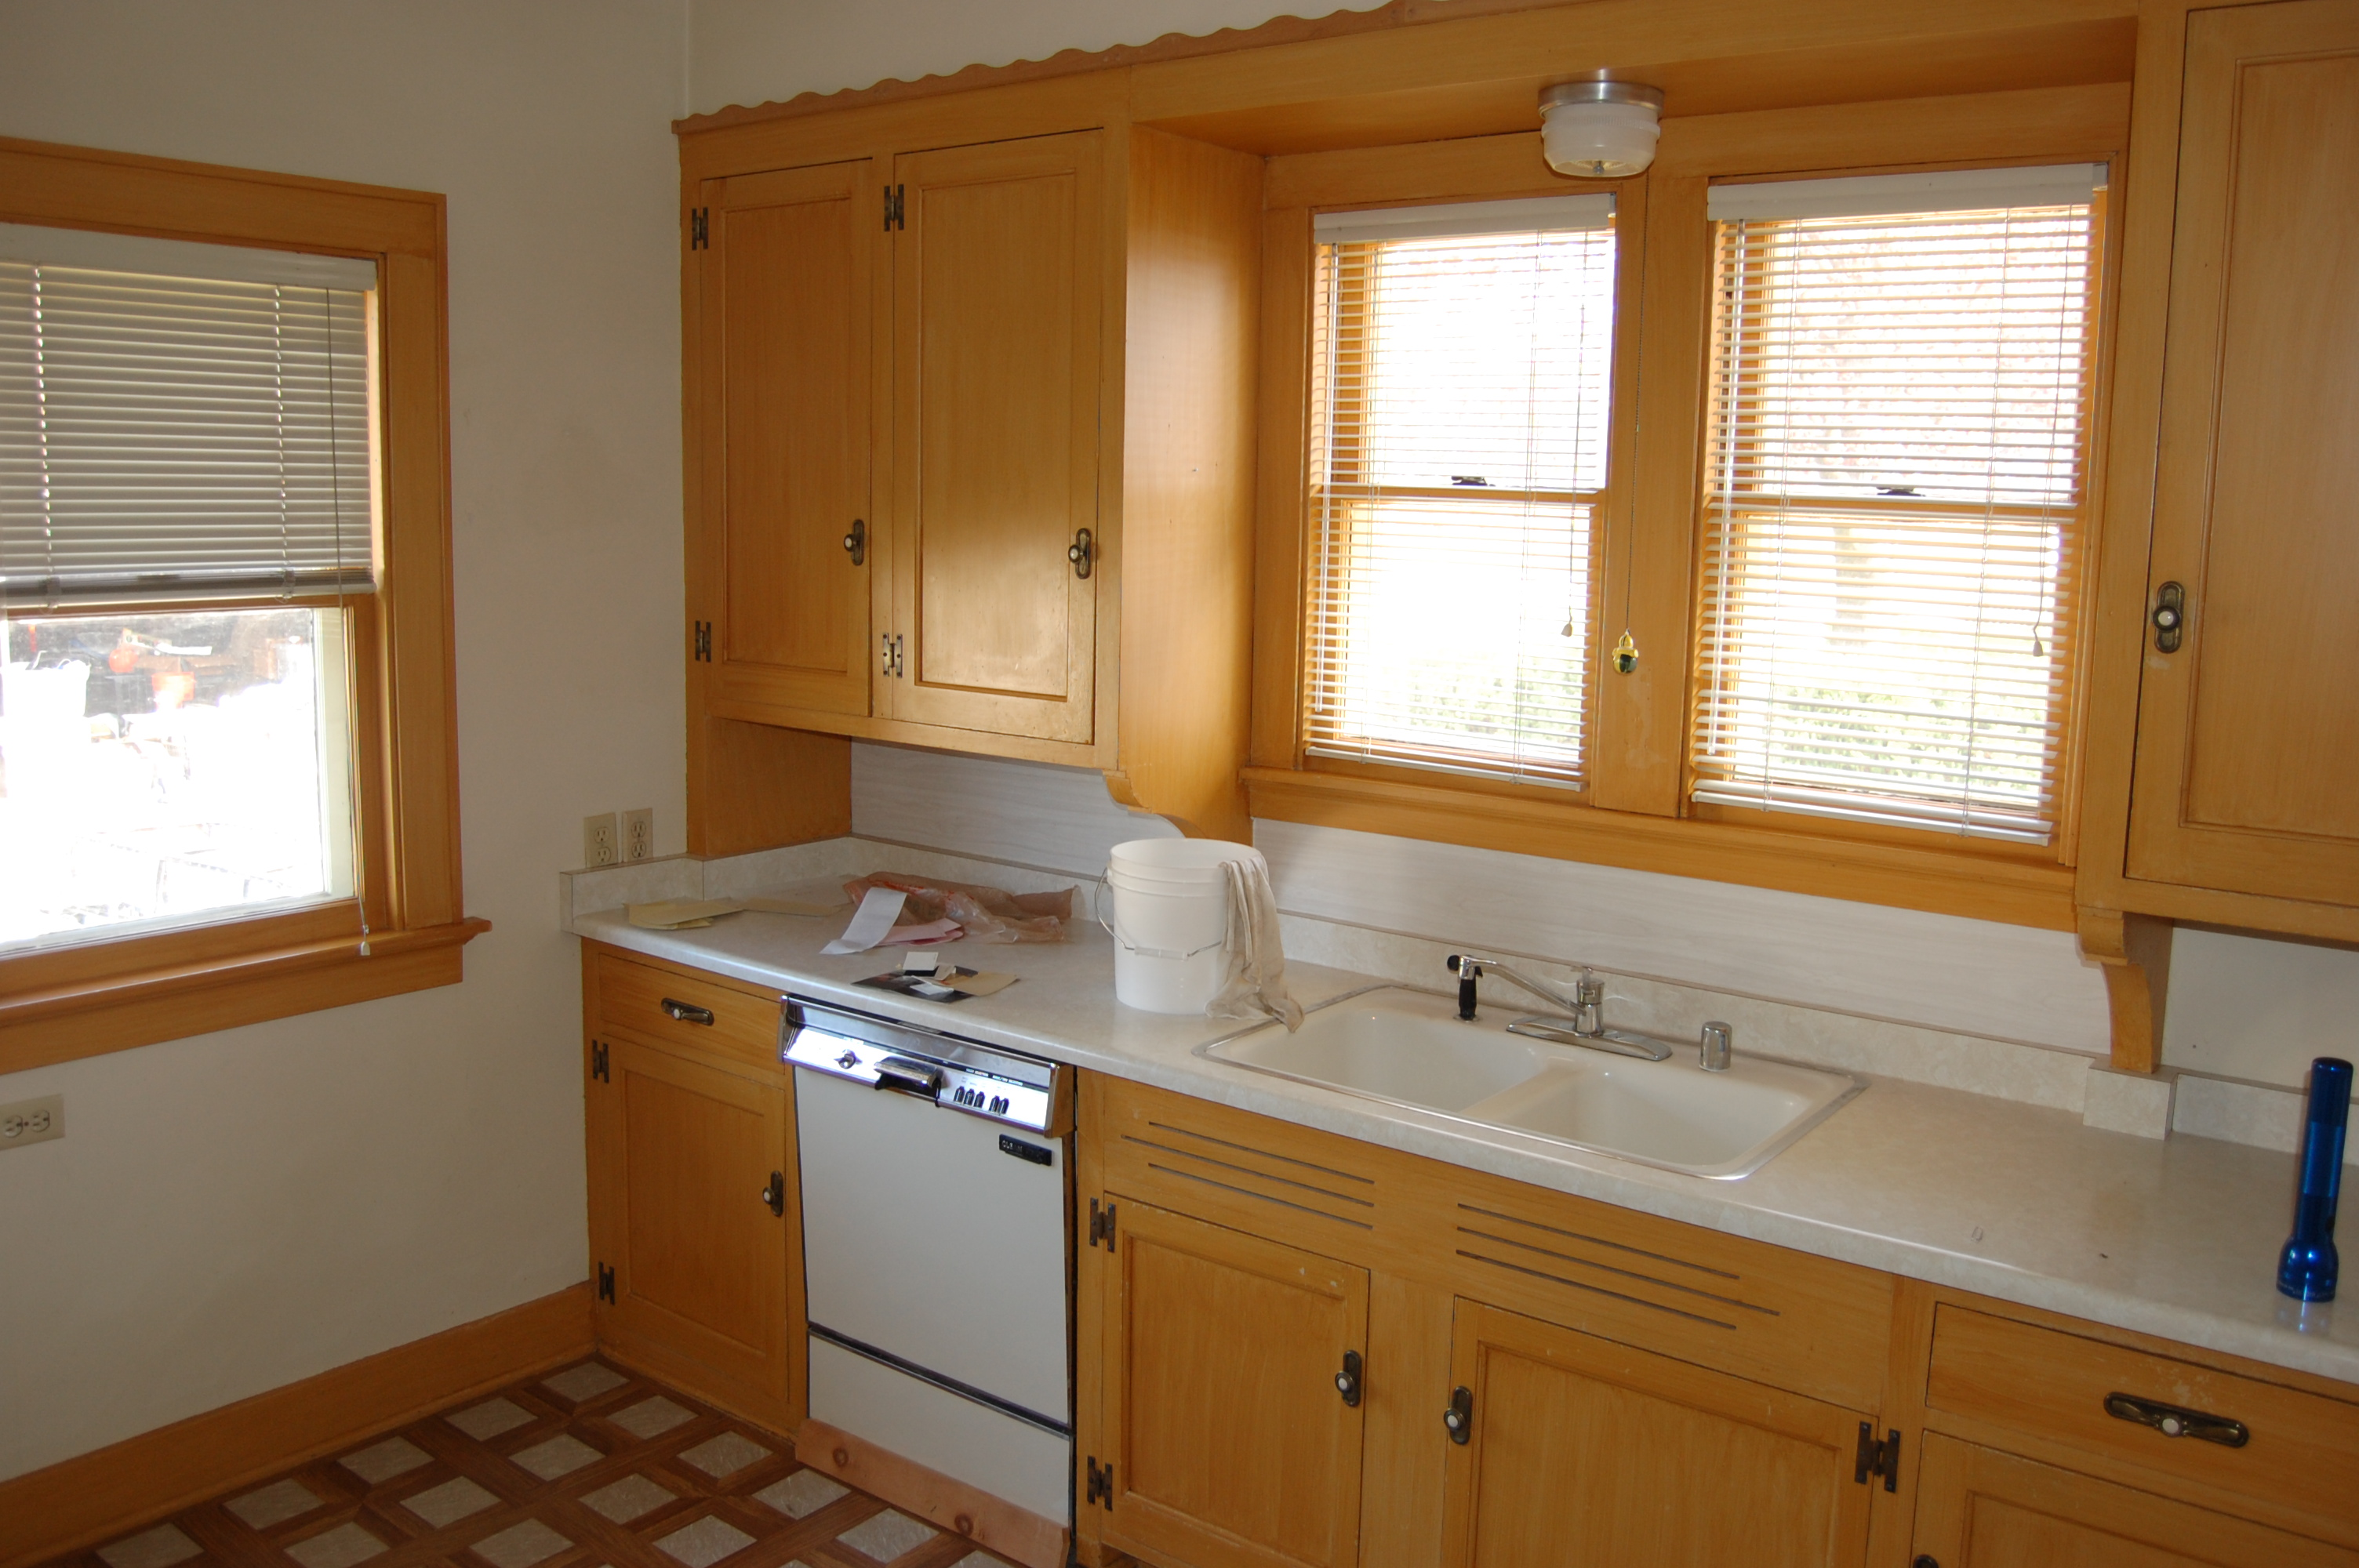 ... cabinets before we painted them: And after: & How To: Painting Kitchen Cabinets |